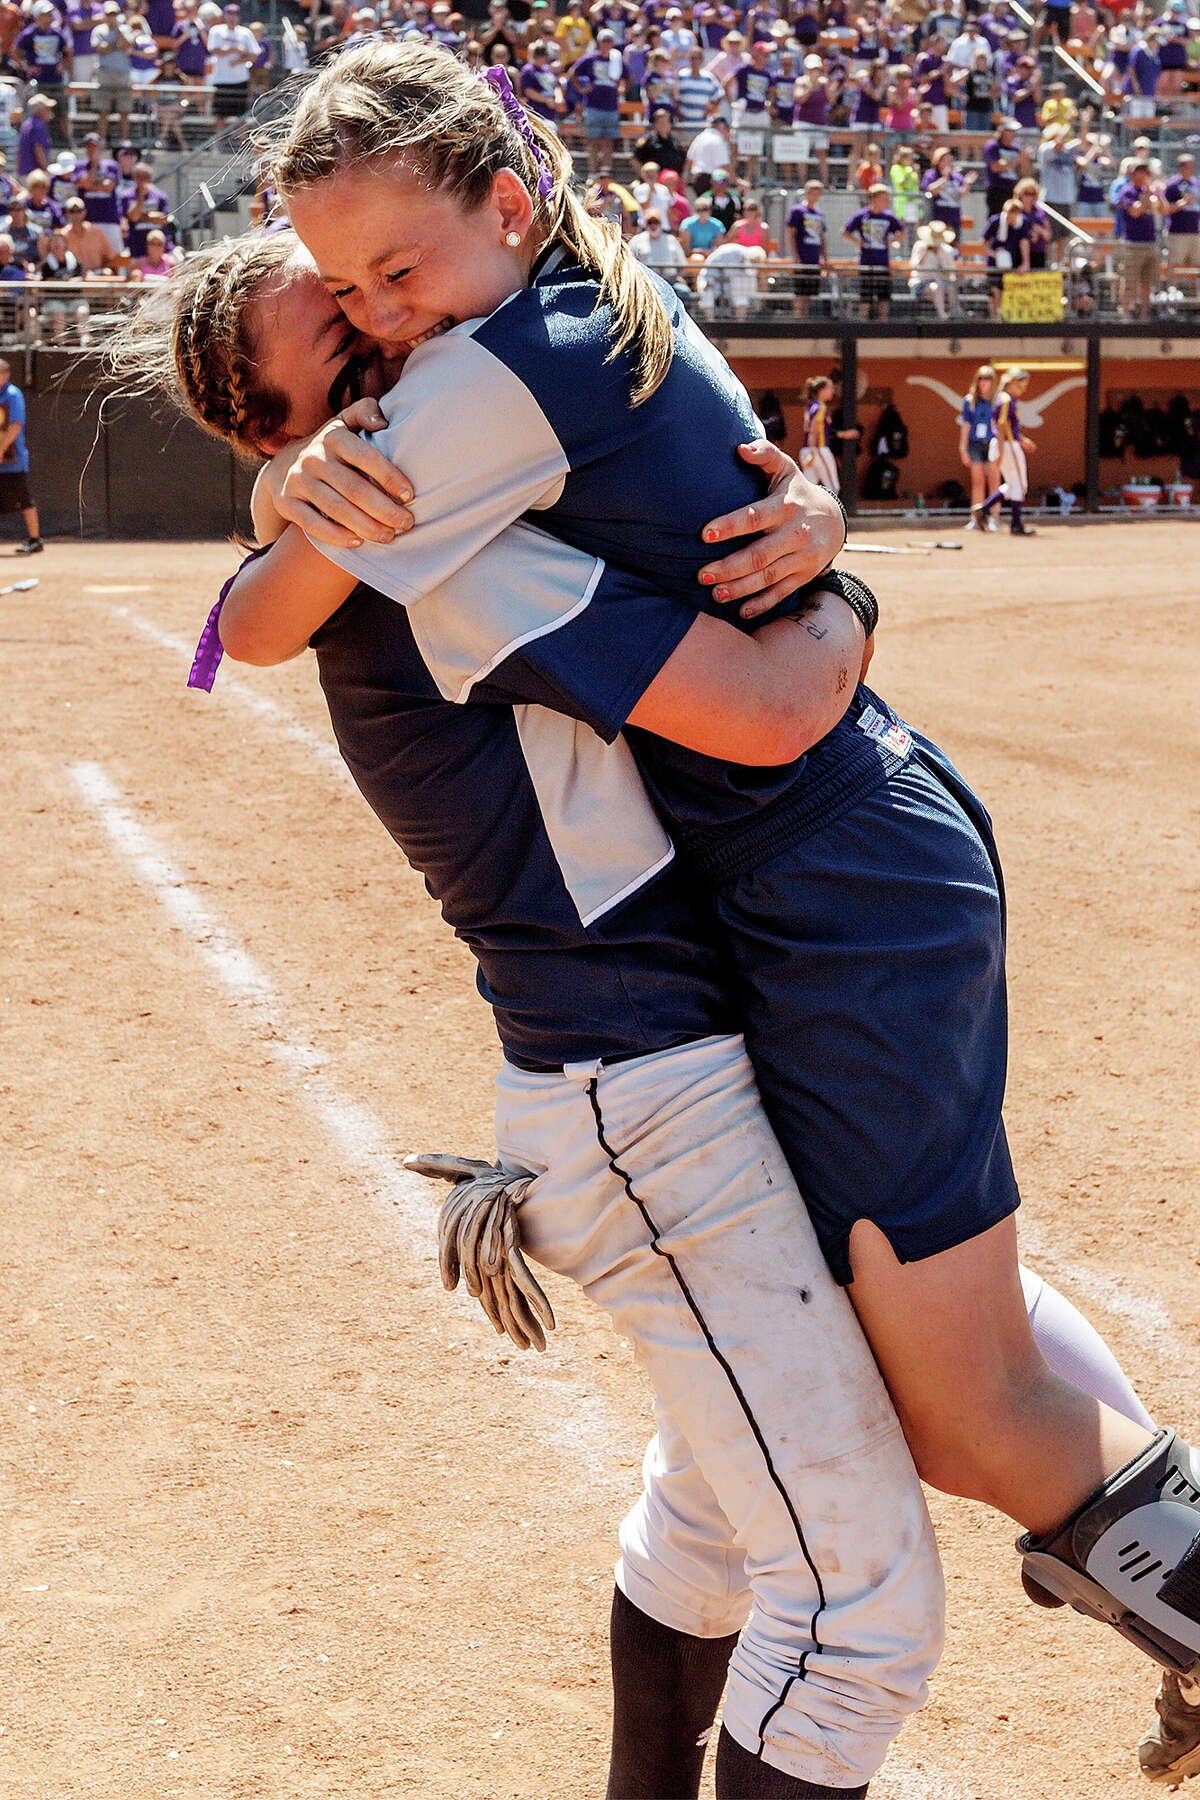 Smithson Valley's Repole twins, Katie (left) and Whitney (right) embrace as they celebrate their 4A state final championship folloowing their game with Montgomery at McCombs Field in Austin on June 2, 2012. Smithson Valley won the game 9-8. MARVIN PFEIFFER/ mpfeiffer@express-news.net